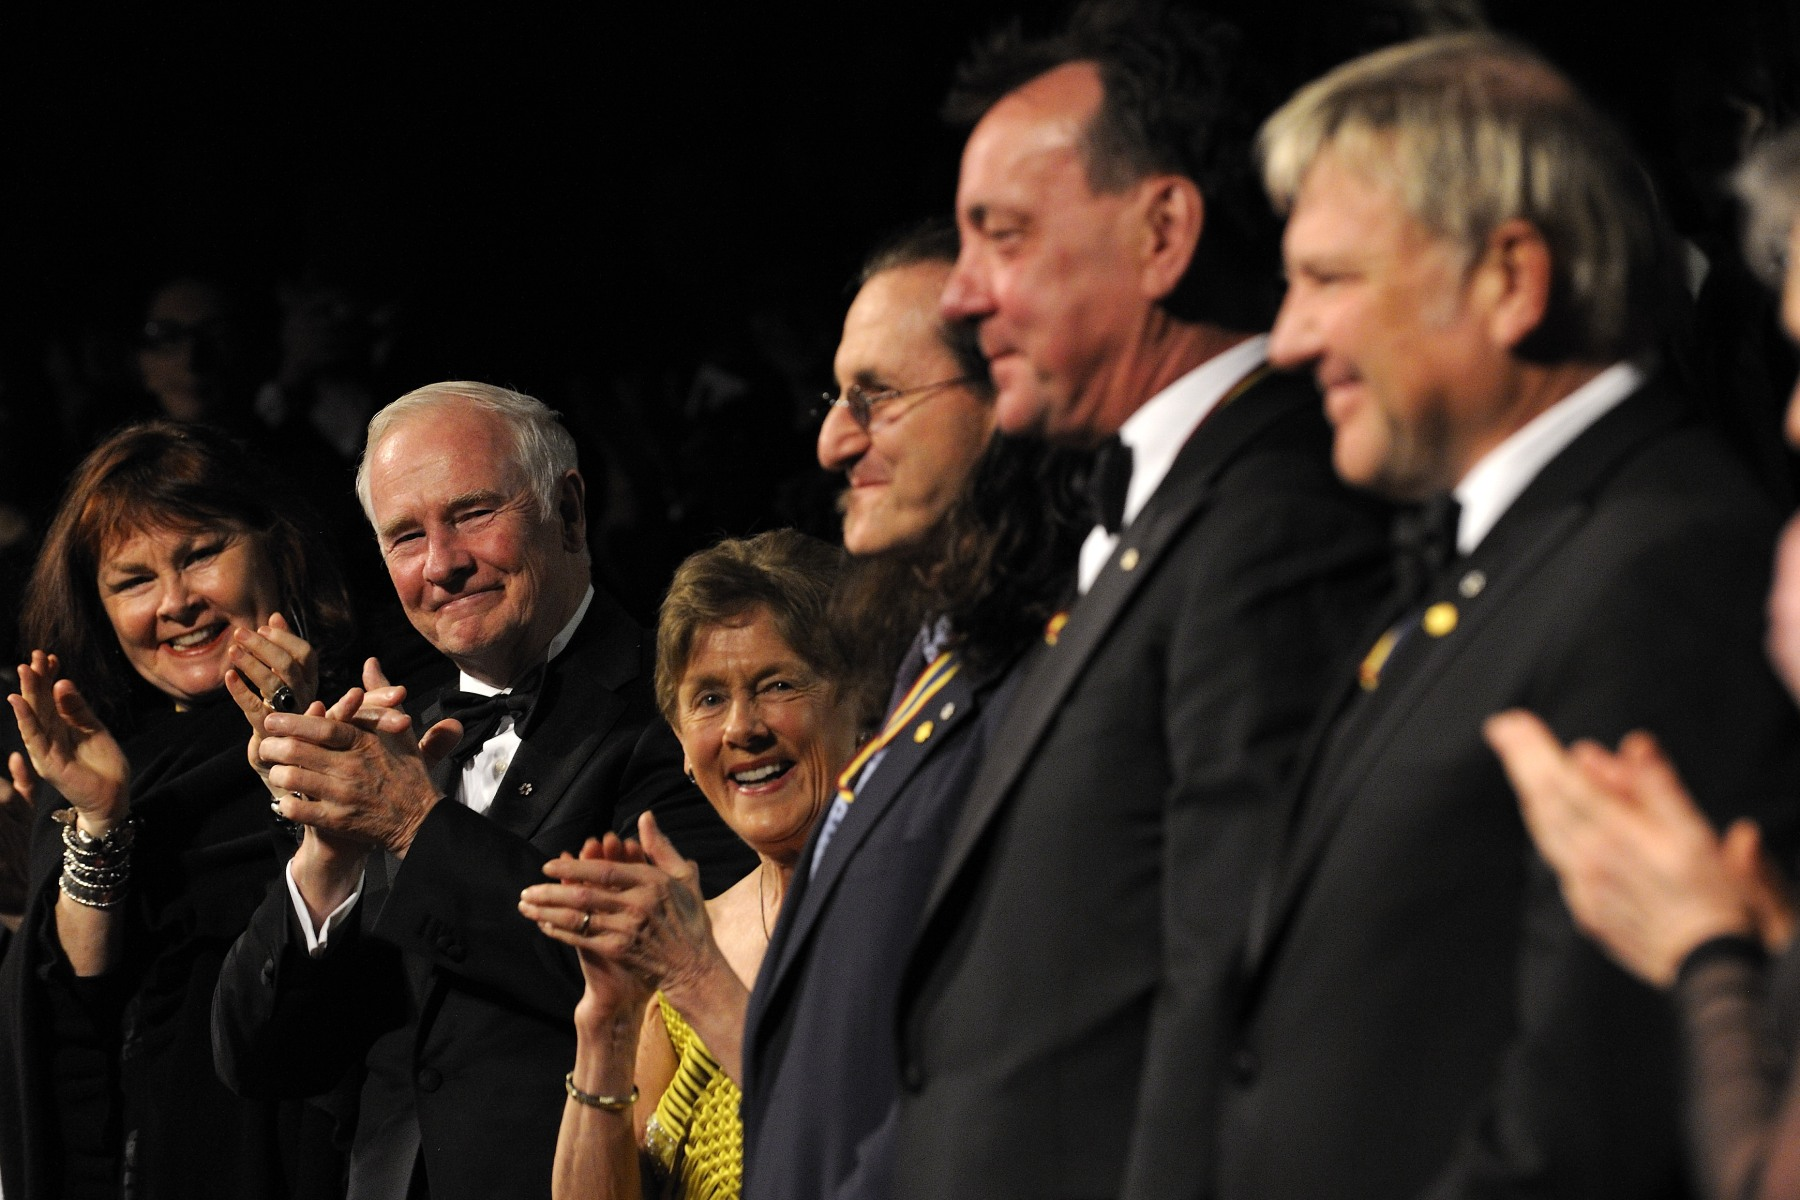 The members of Rush were among the 2012 GGPAA for Lifetime Artistic Achievement Award Laureates.